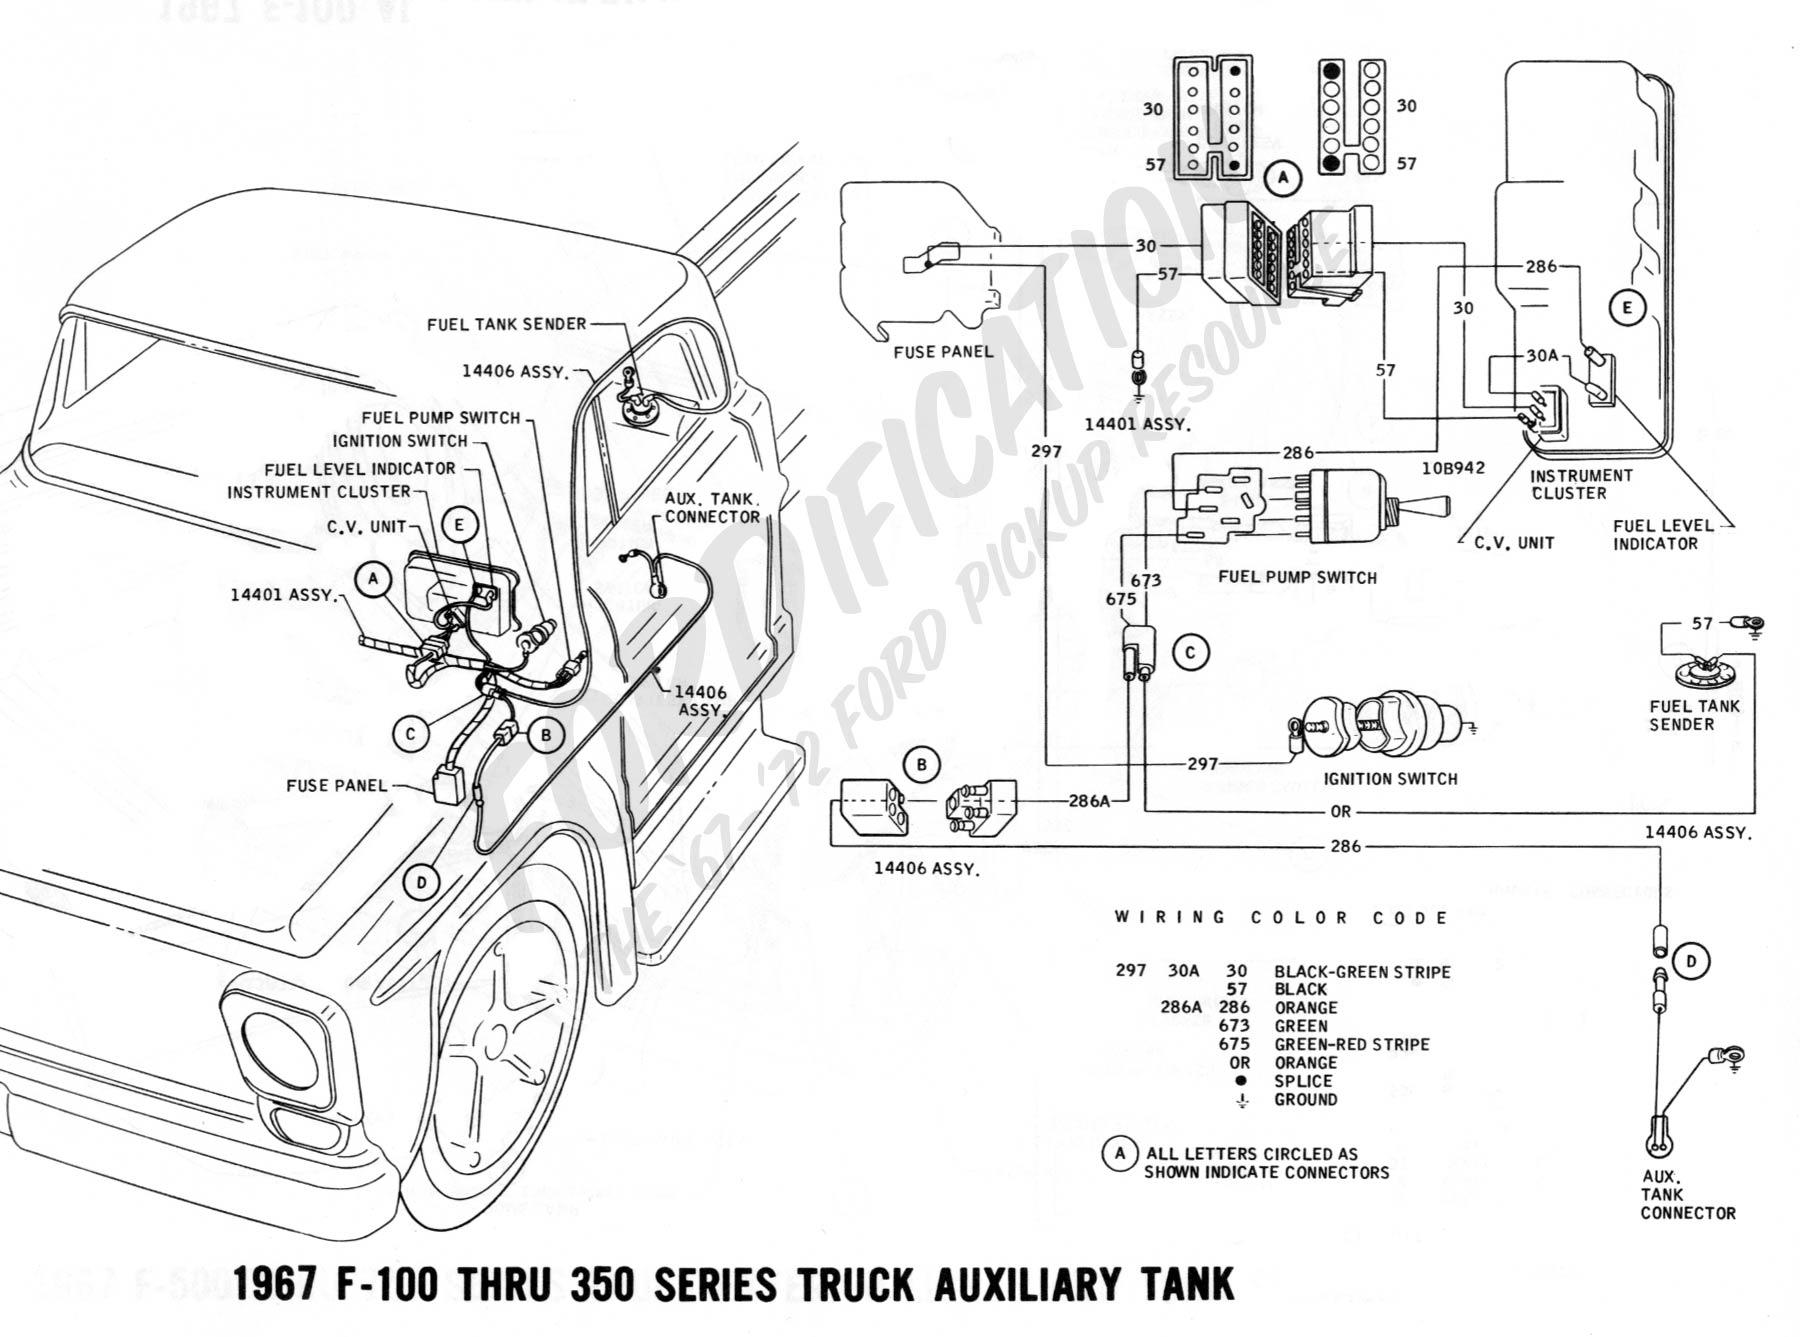 wiring 1967auxtank ford truck technical drawings and schematics section h wiring Ford F-250 Wiring Diagram at mifinder.co